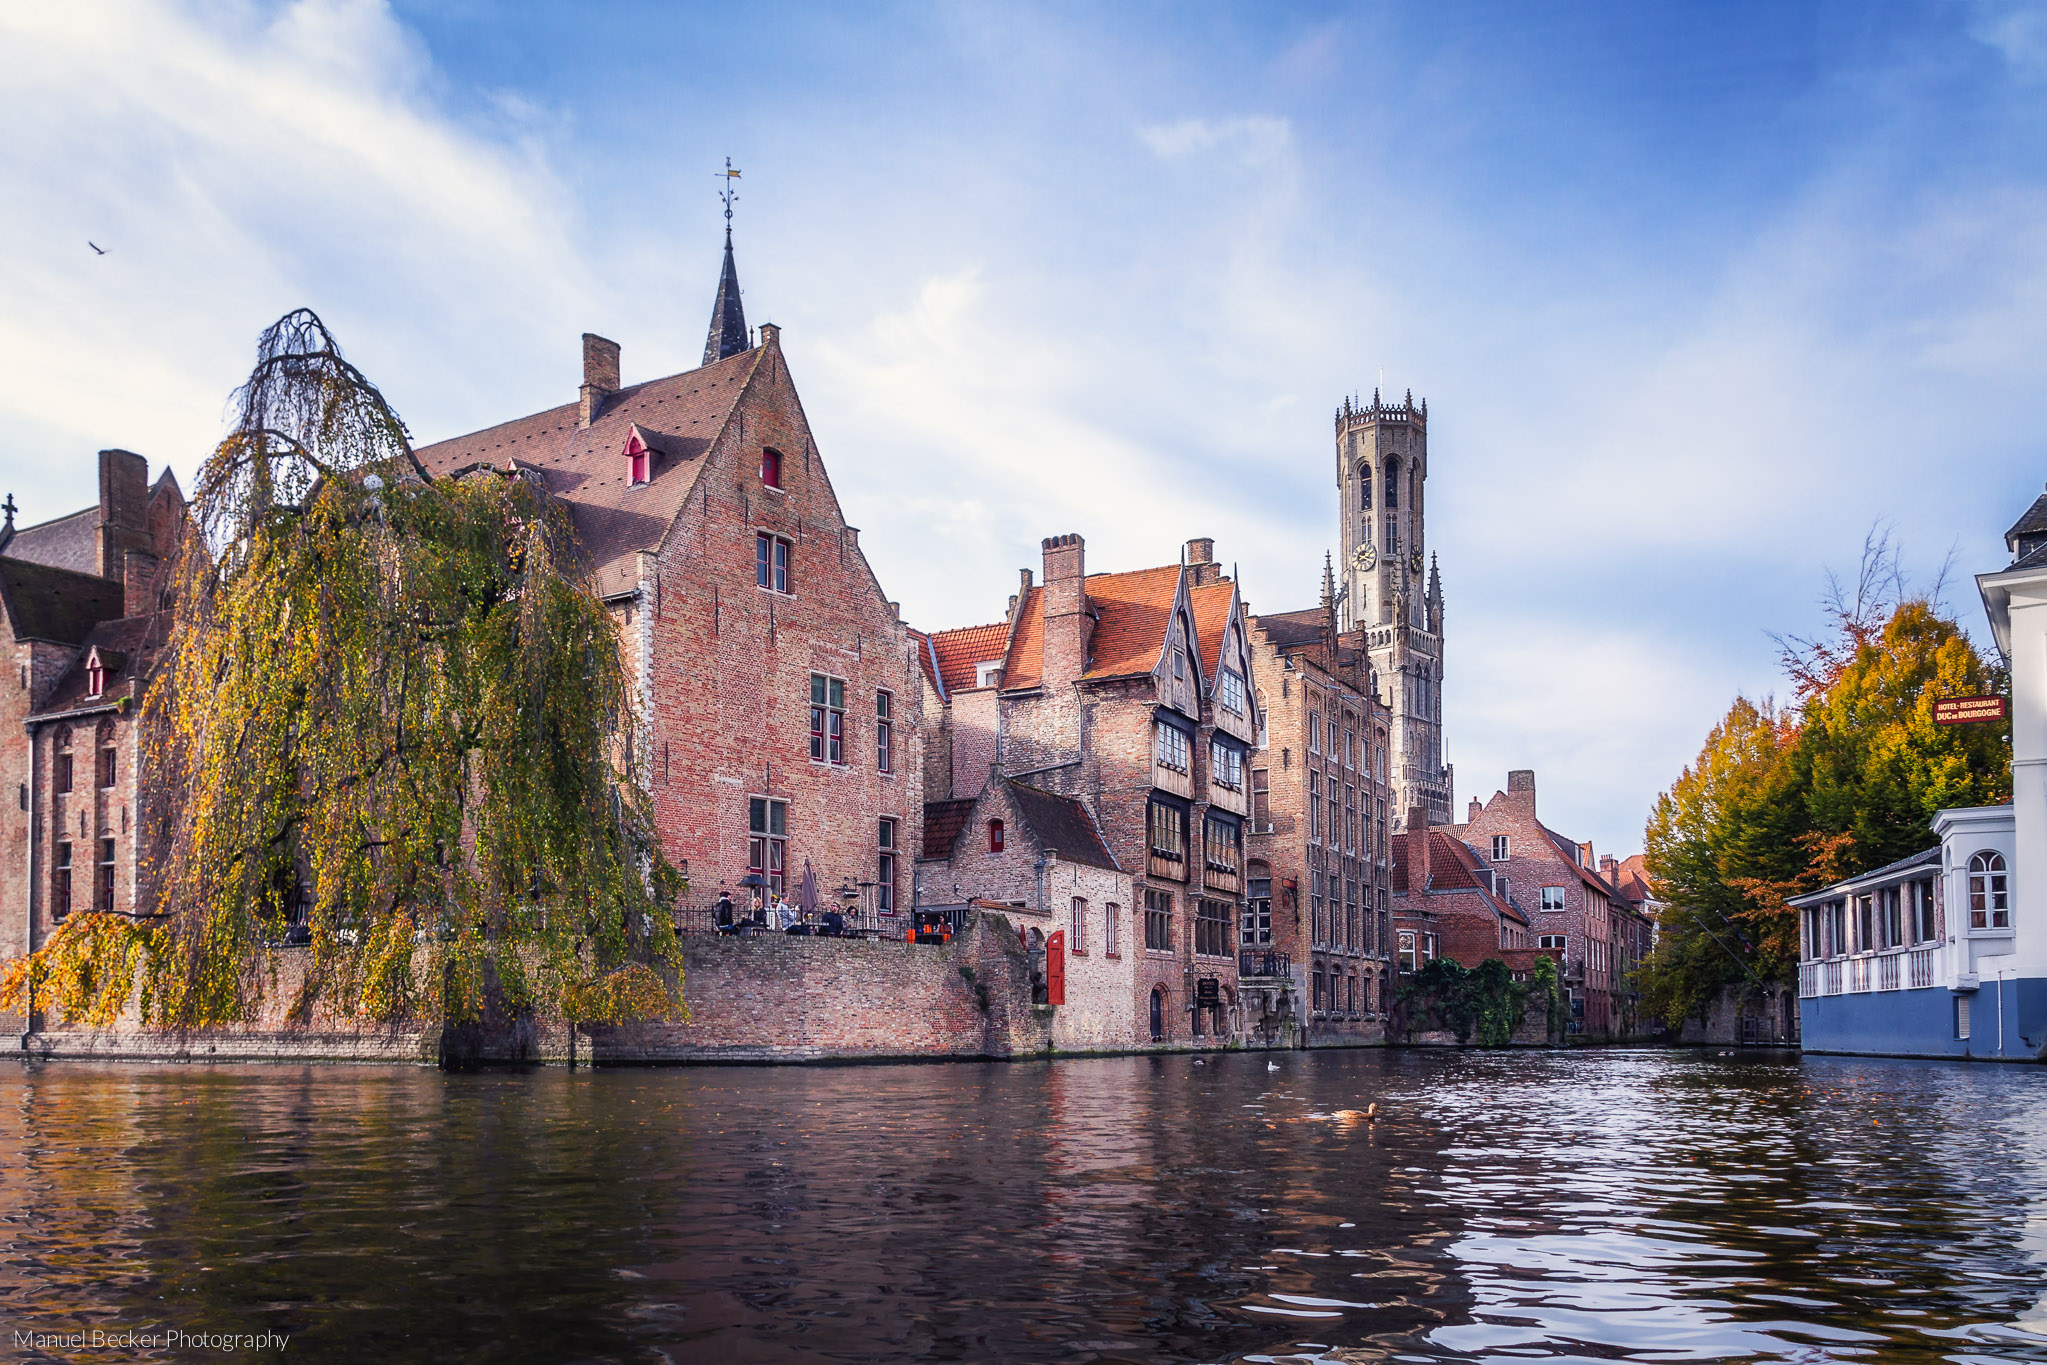 Typical view of Bruges, Belgium